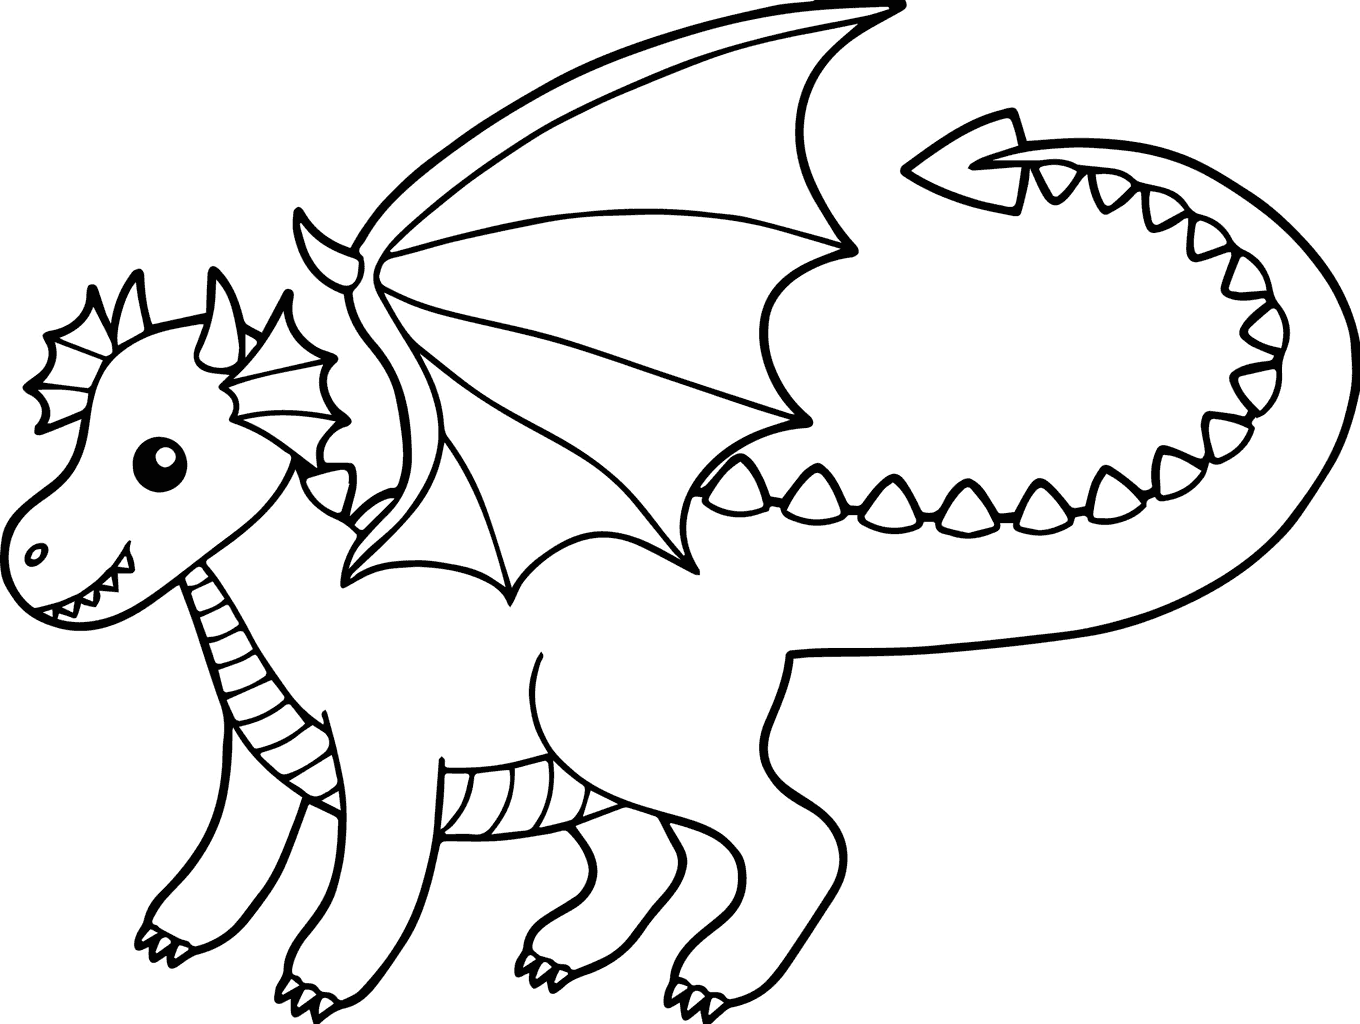 Baby Dragon Coloring Page for Kids - coloring.rocks!